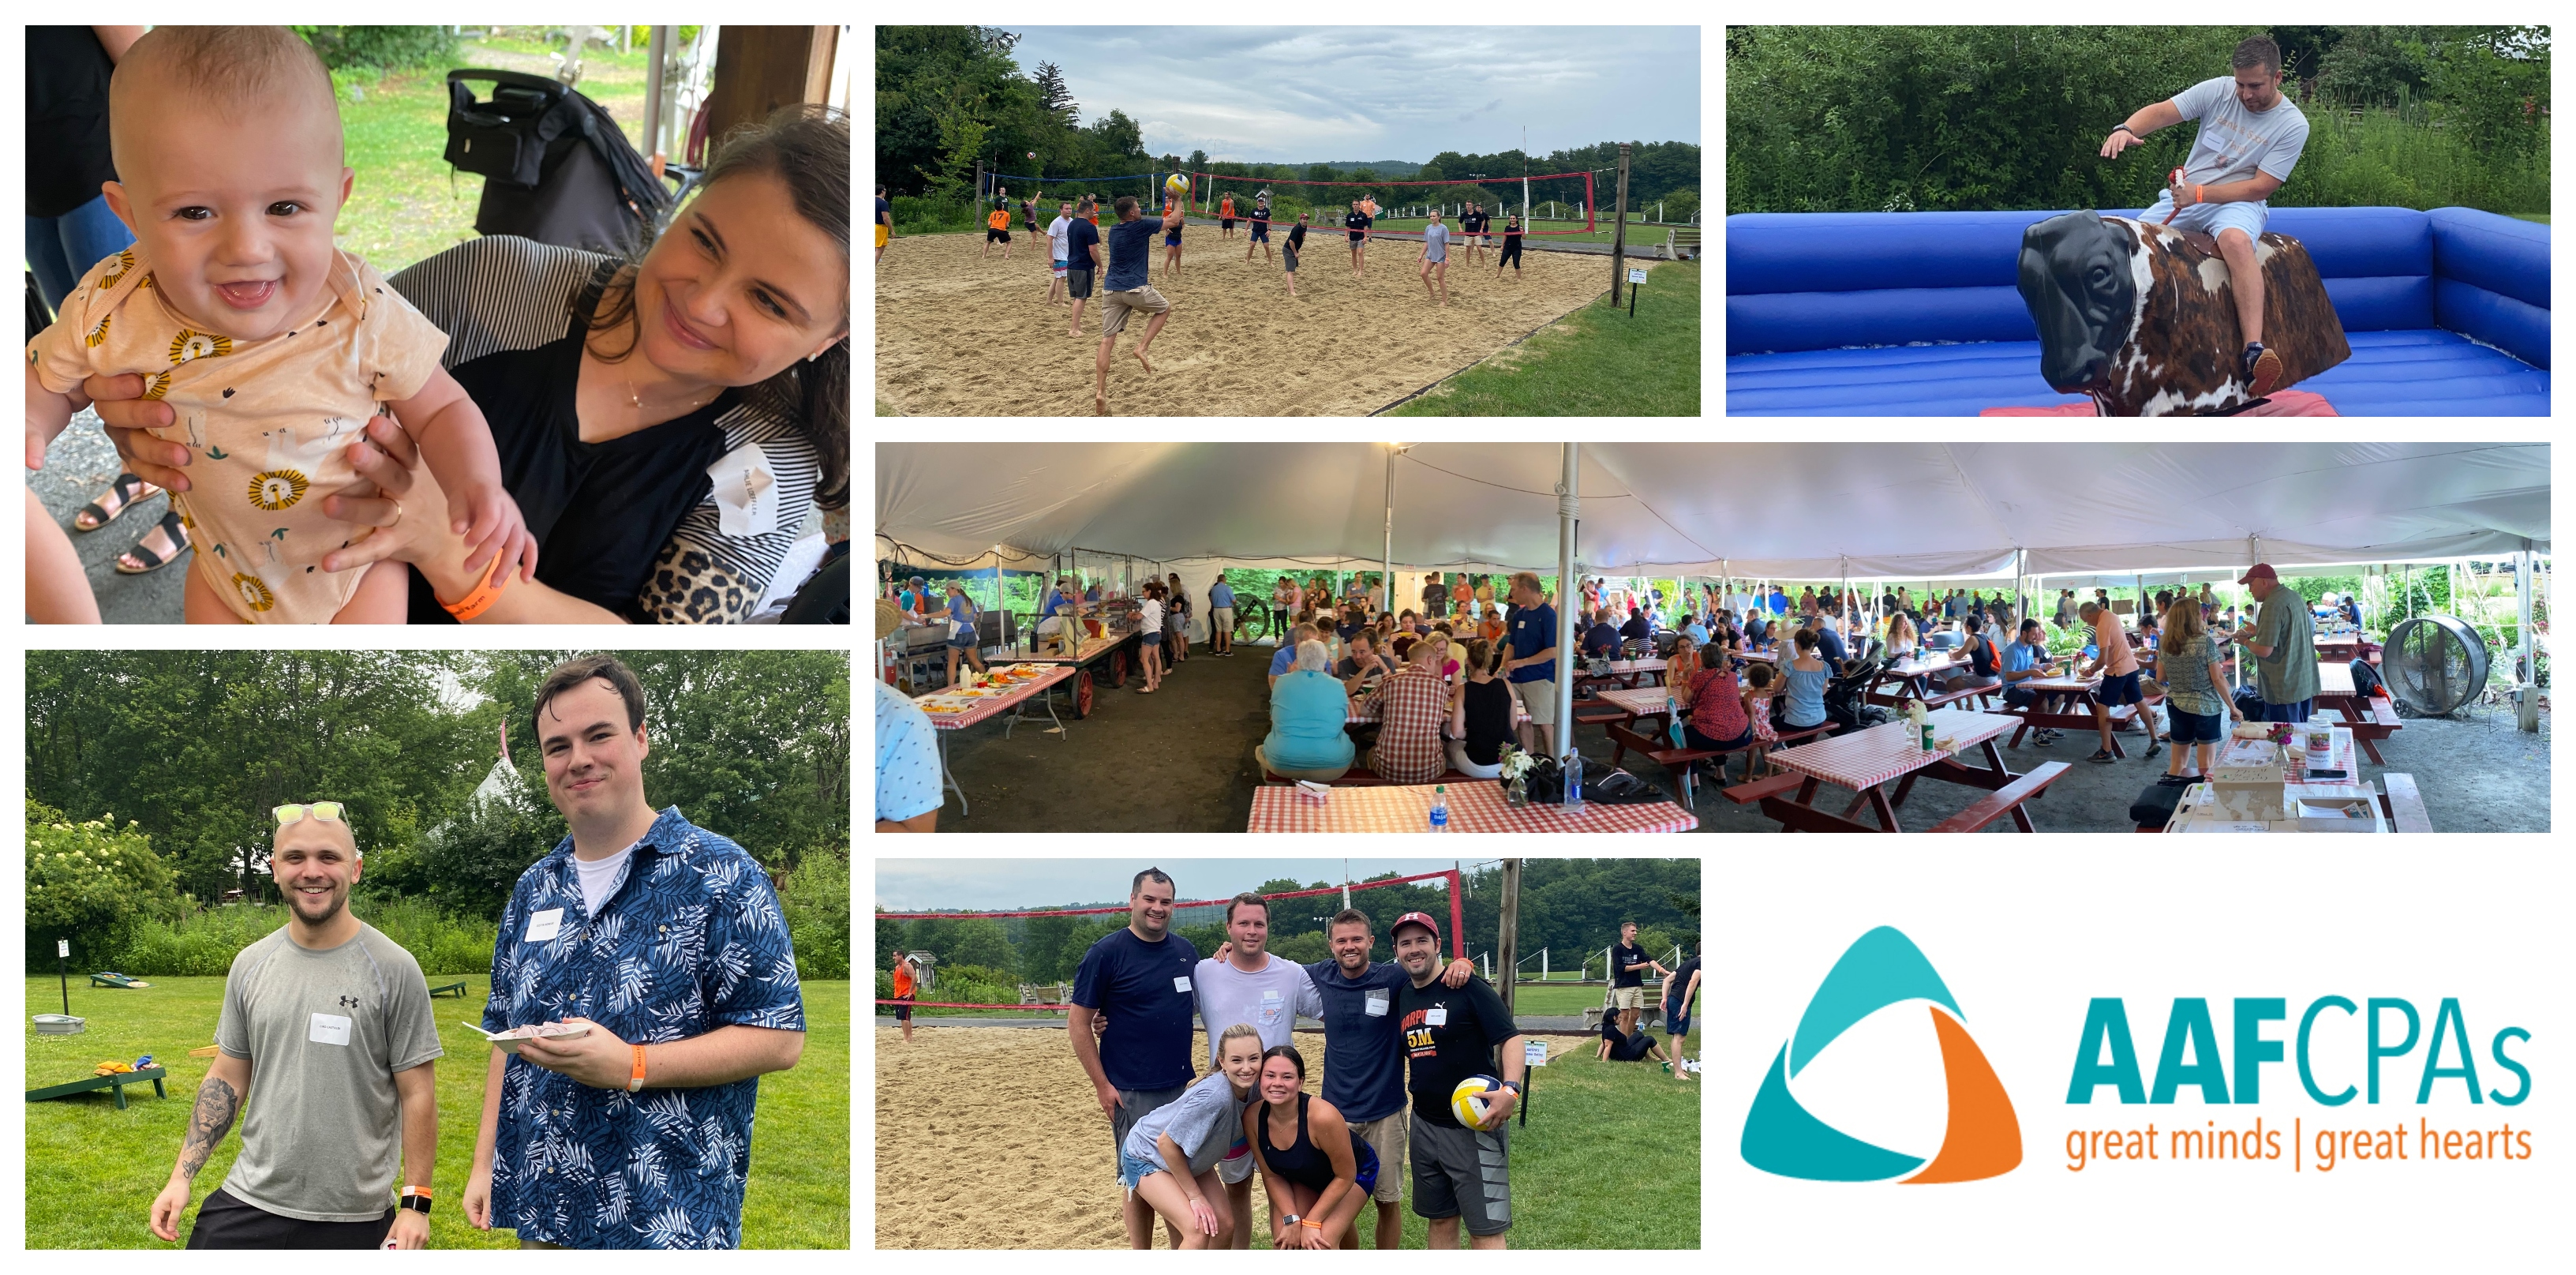 AAFCPAs' Raises $1350 for Mental Health at Summer Outing